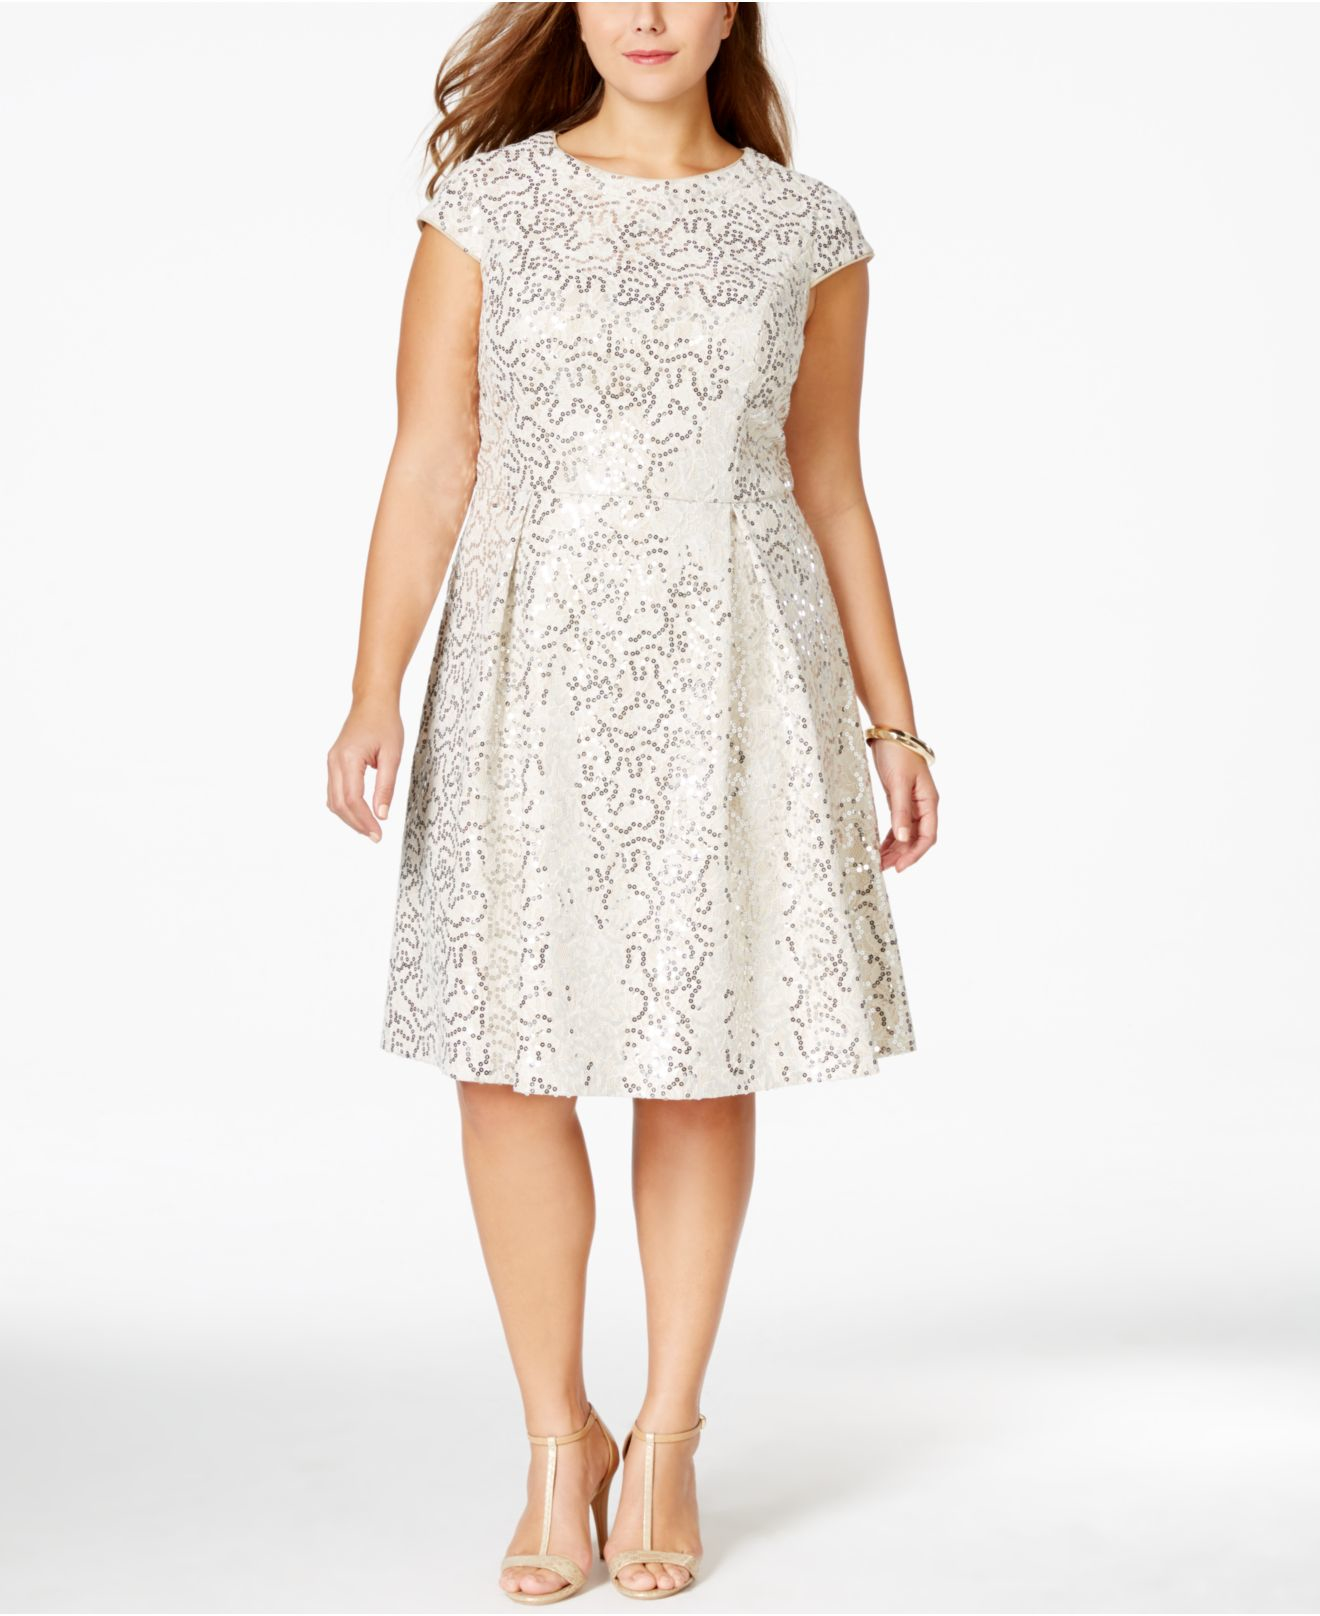 Lyst - Calvin klein Plus Size Sequined Flare Dress in White